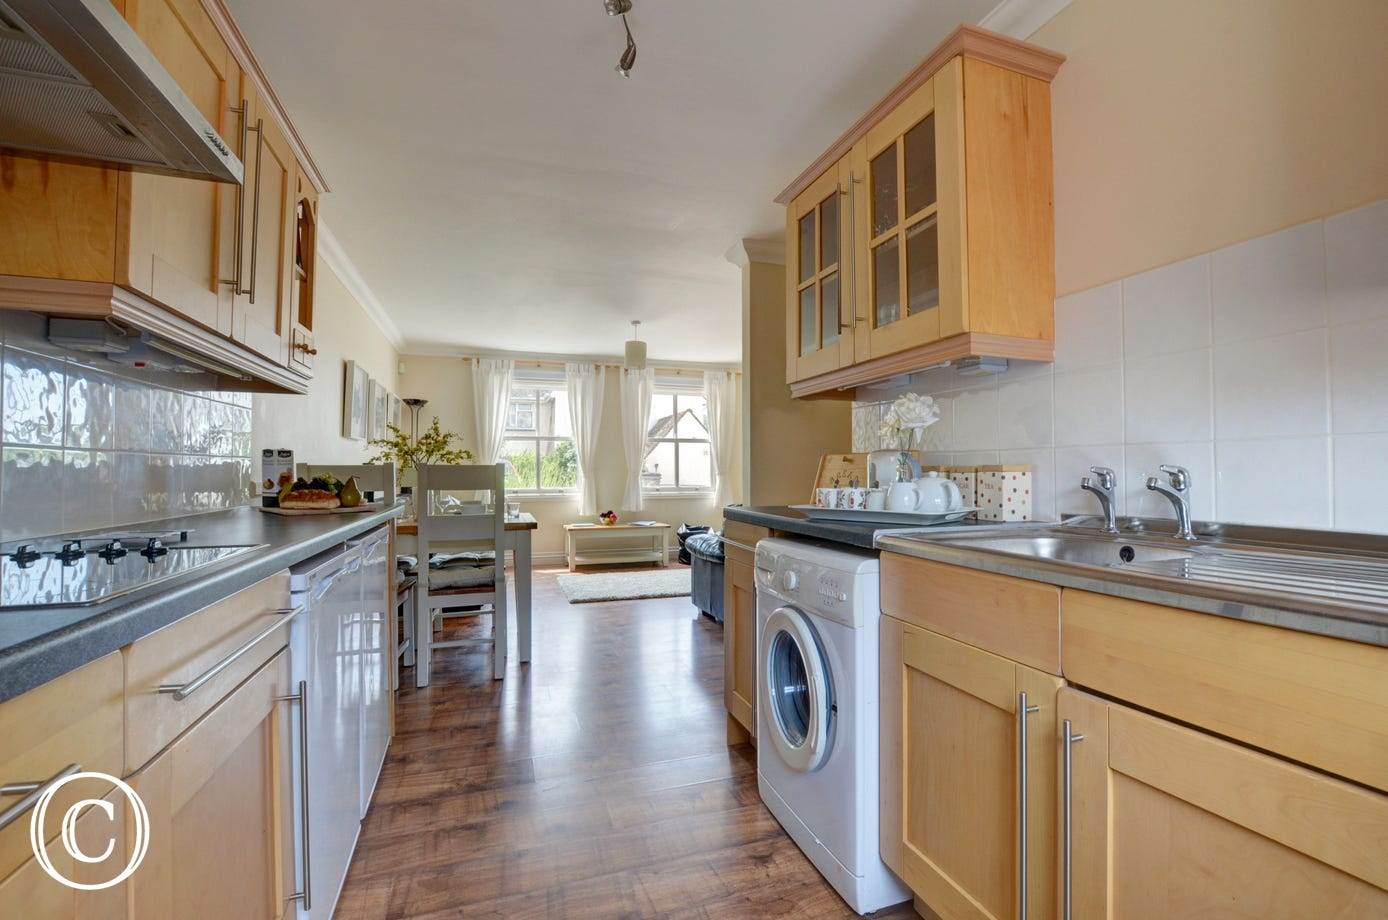 A fully-equipped kitchen area provides all you will need for your holiday